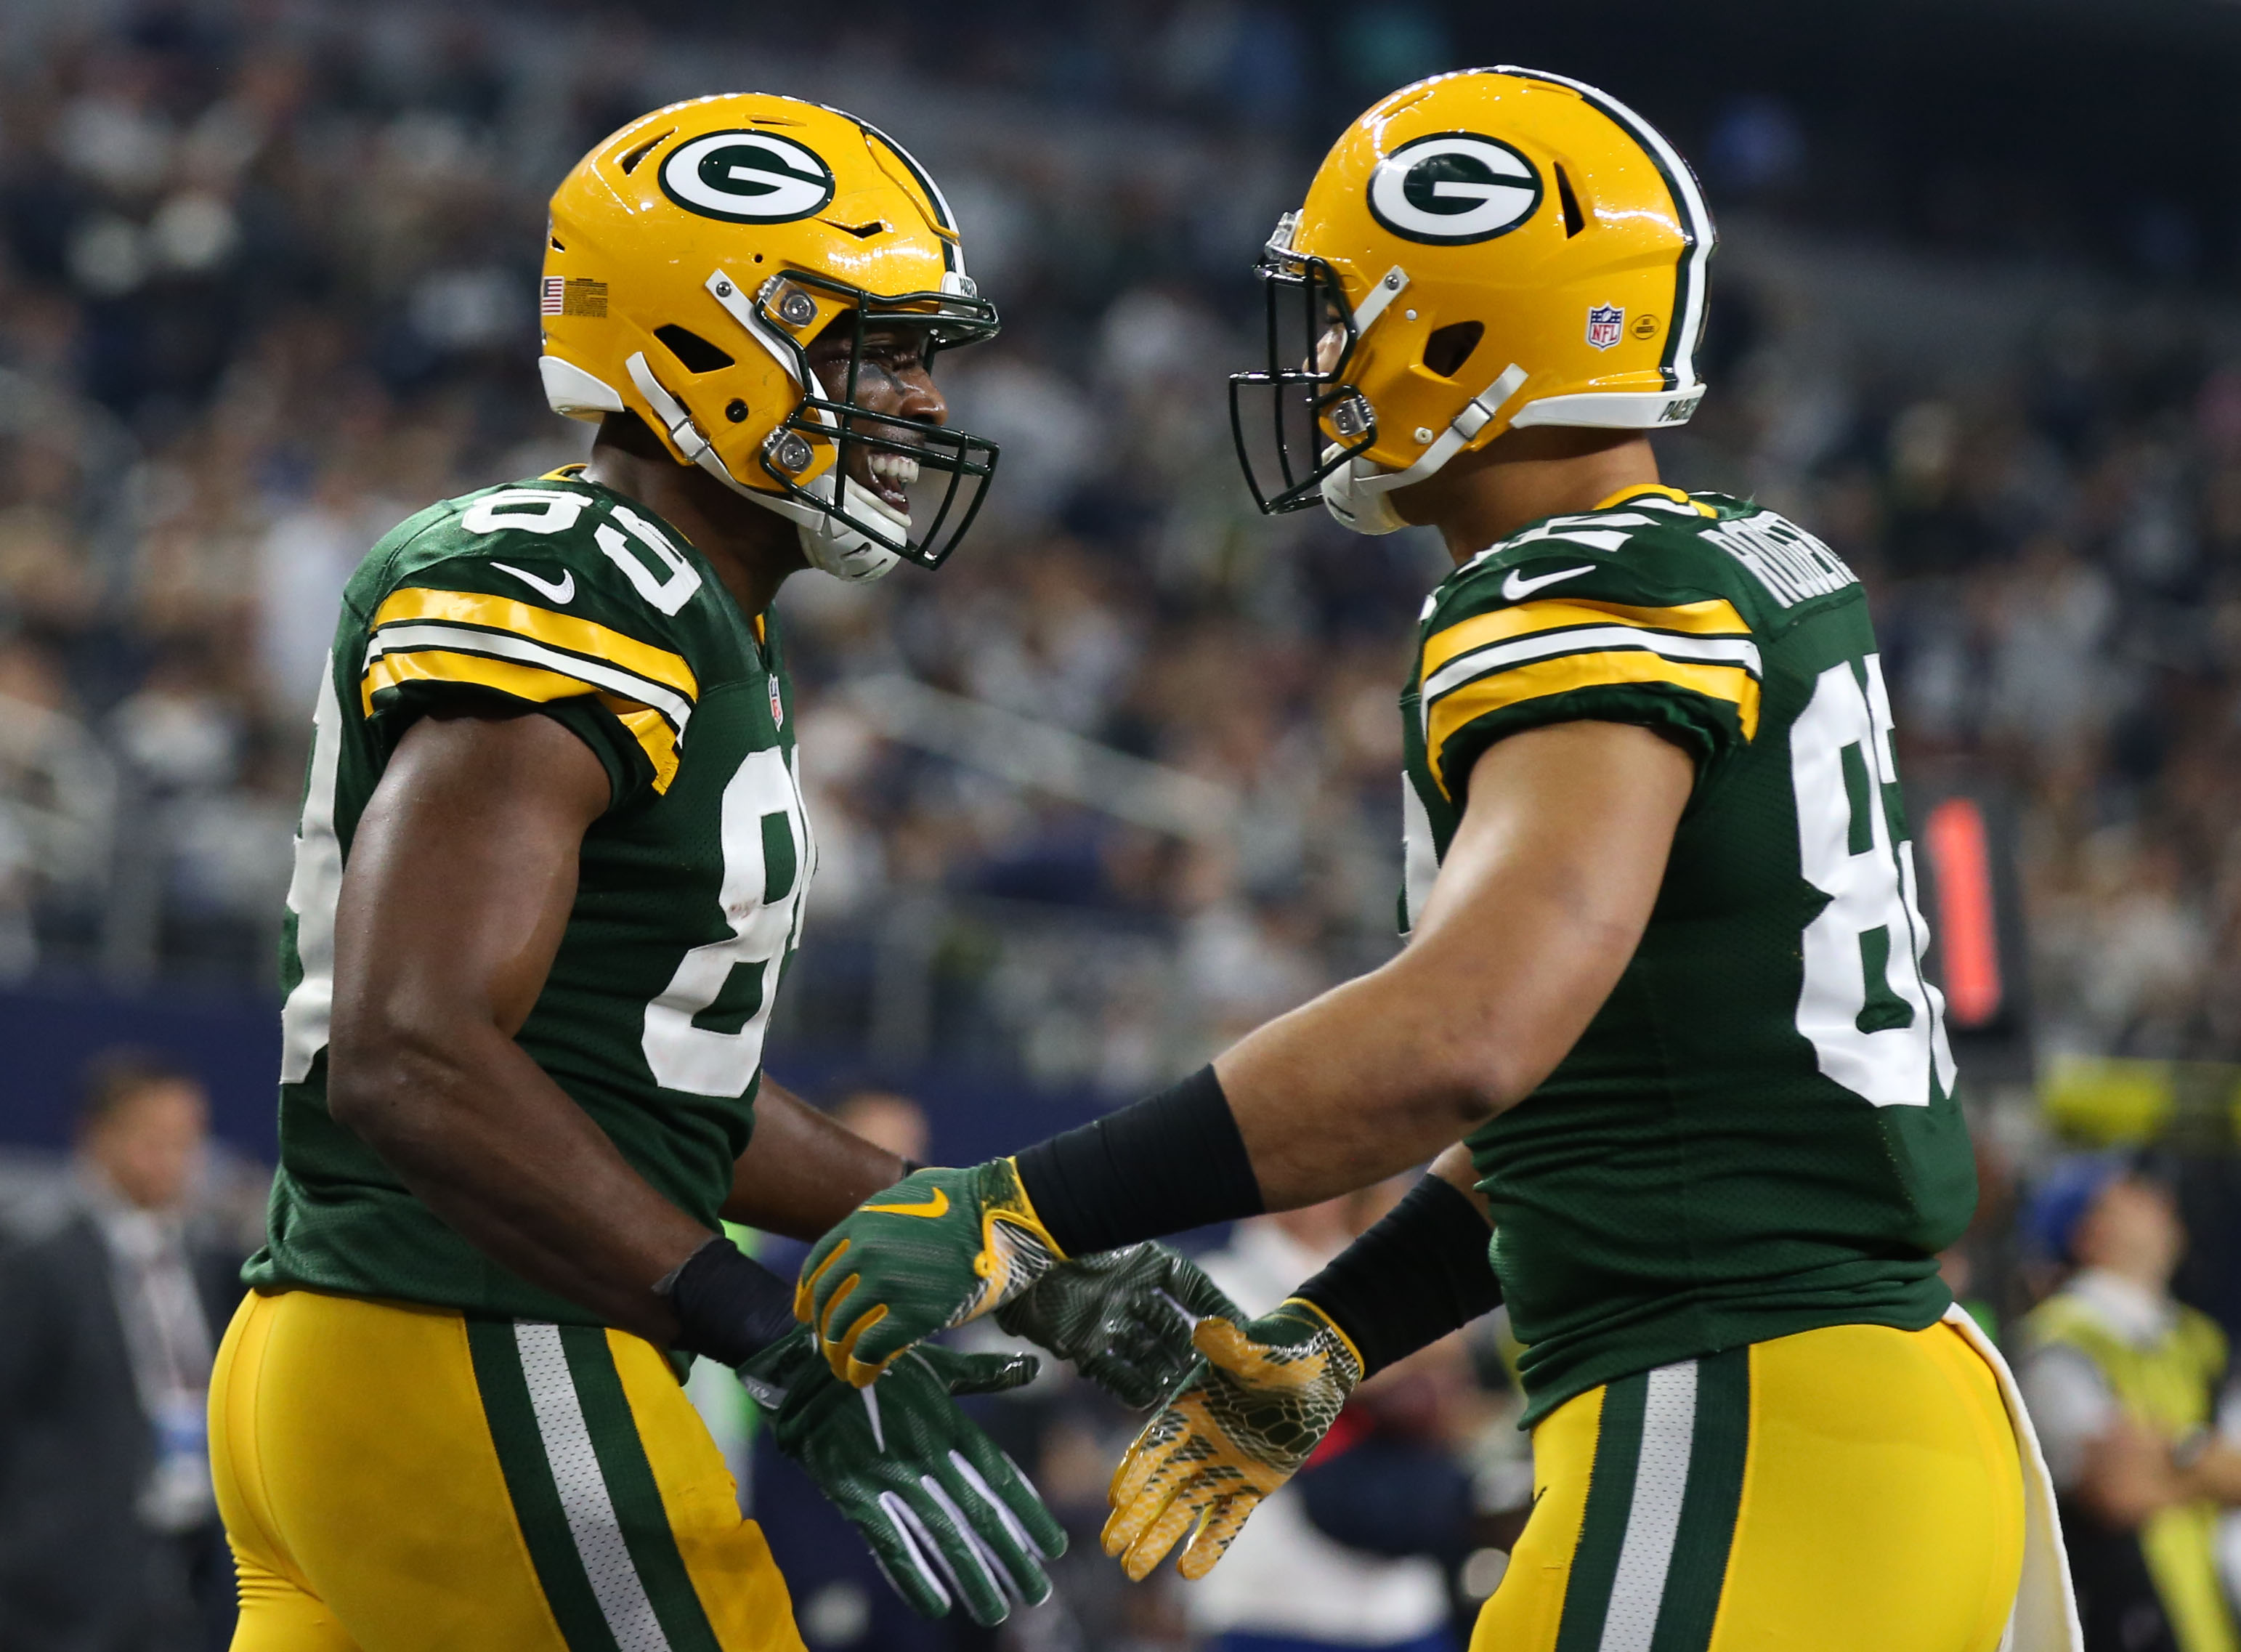 9812207-nfl-nfc-divisional-green-bay-packers-at-dallas-cowboys